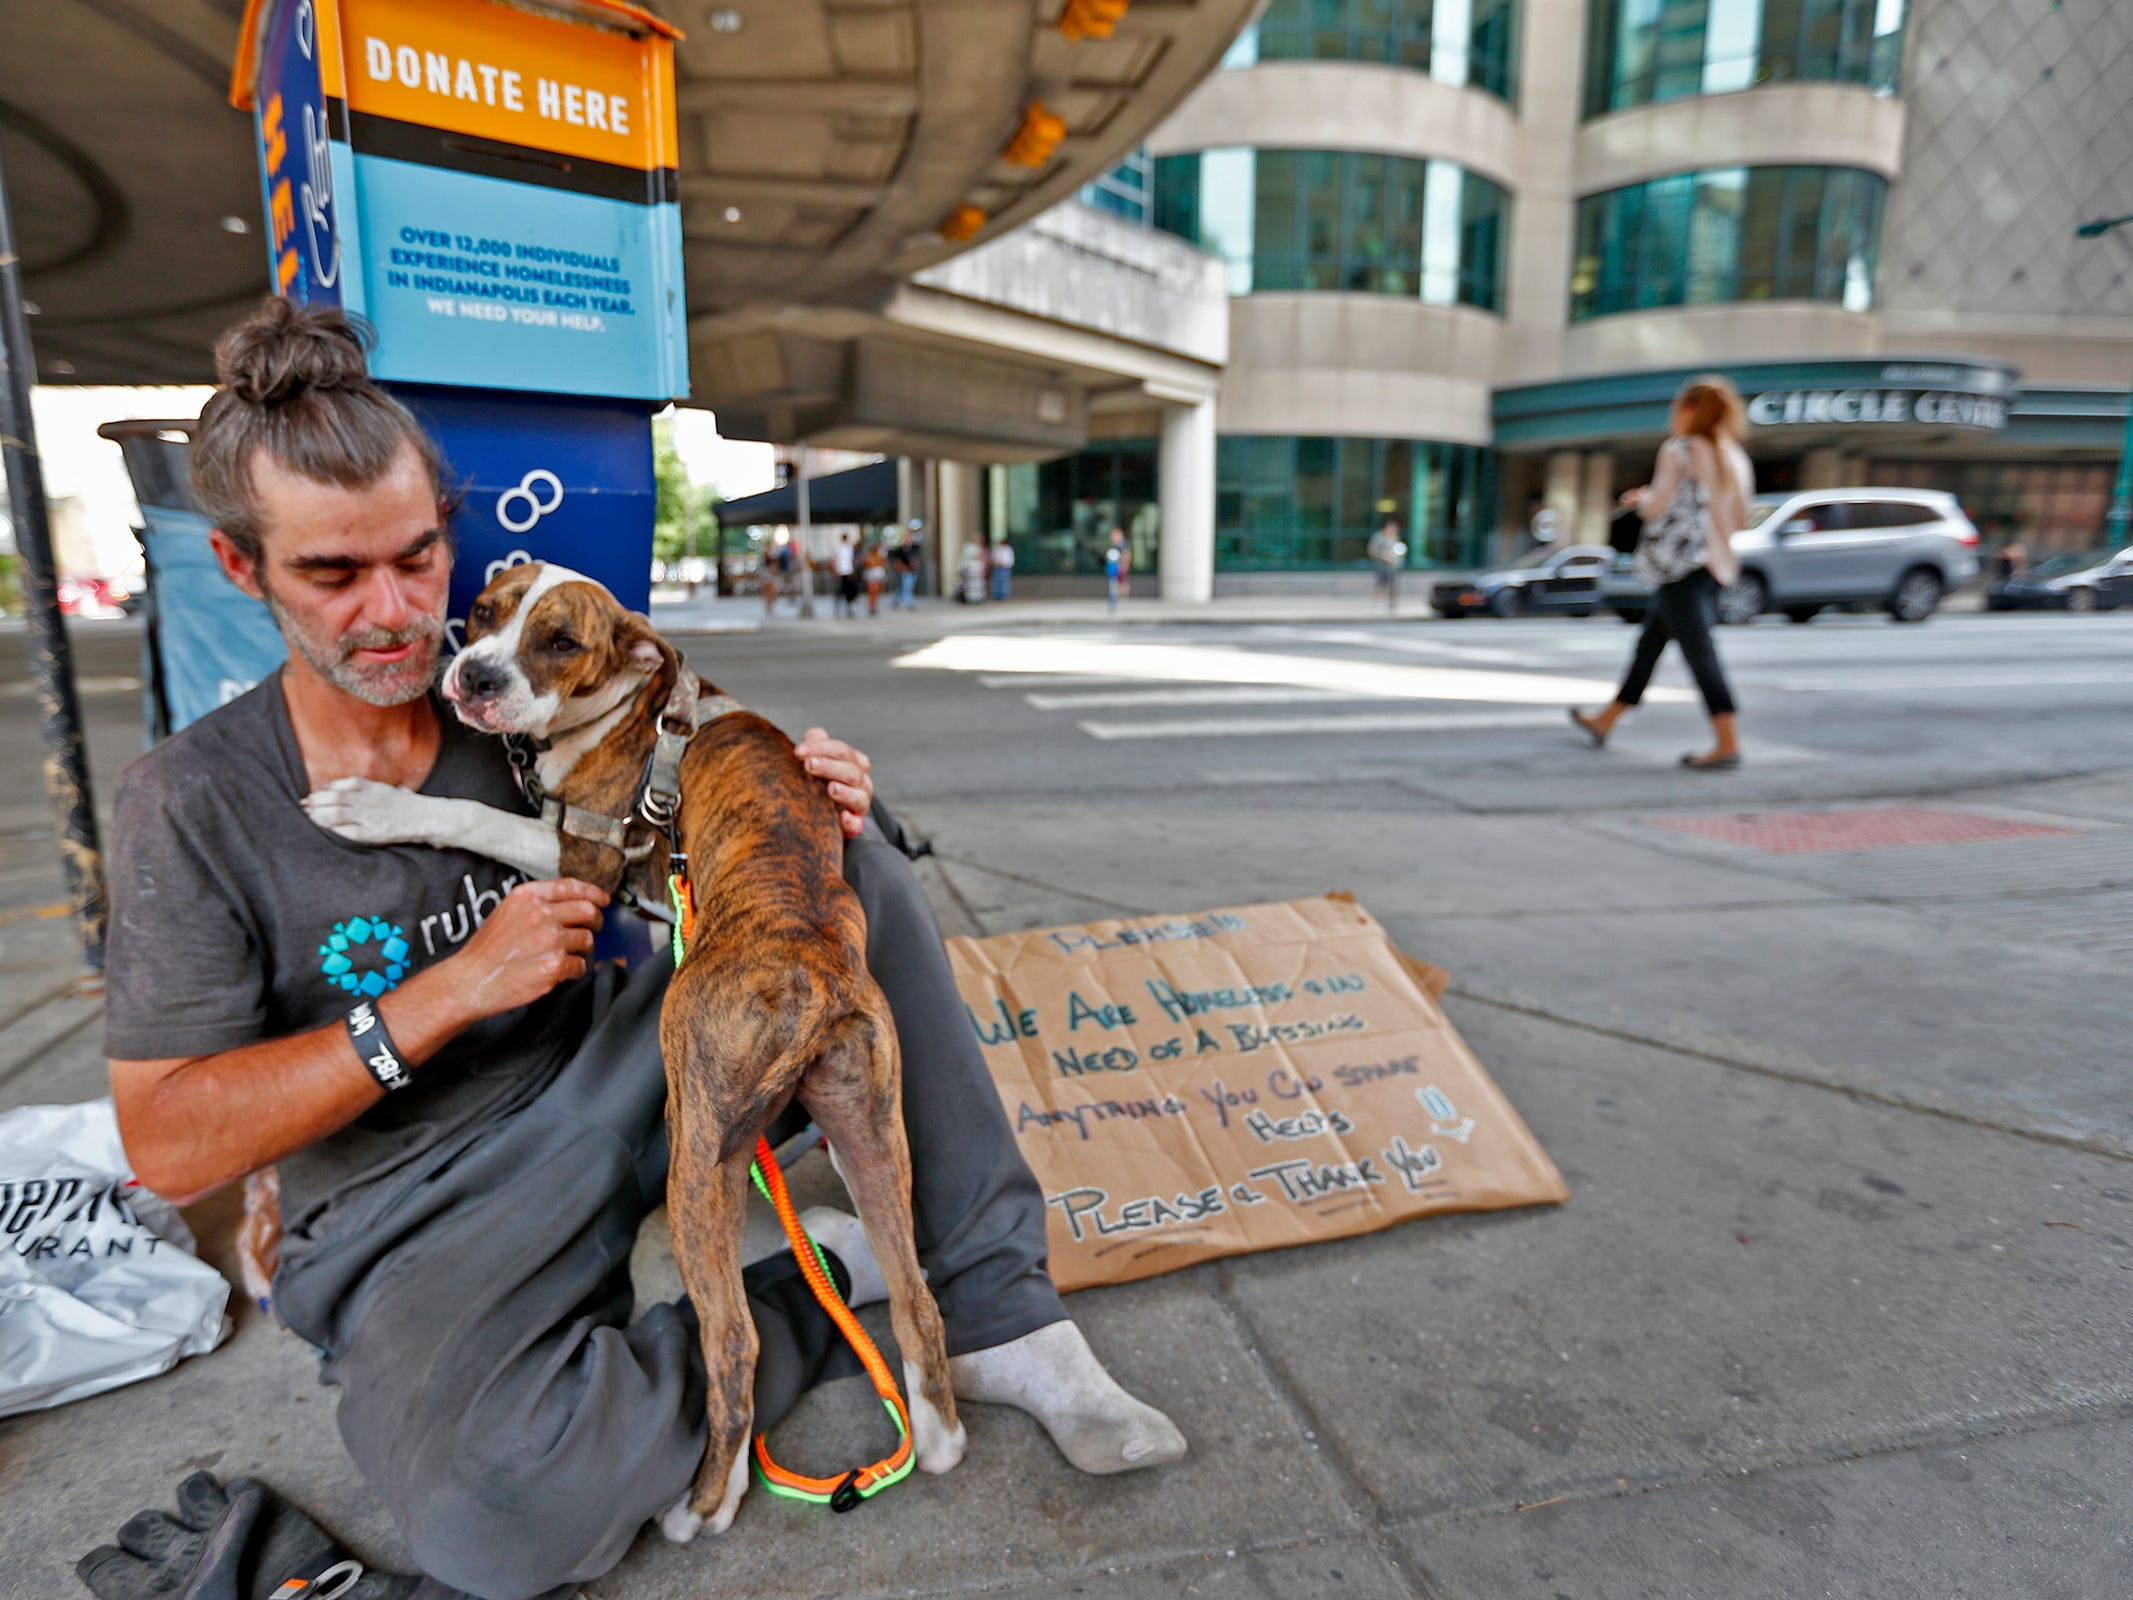 A homeless man and his dog hang out on a corner in downtown Indianapolis, Thursday, Aug. 9, 2018.  Coalition for Homelessness Intervention & Prevention (CHIP) and the city of Indianapolis have proposed a plan to end homelessness in the city by 2023.